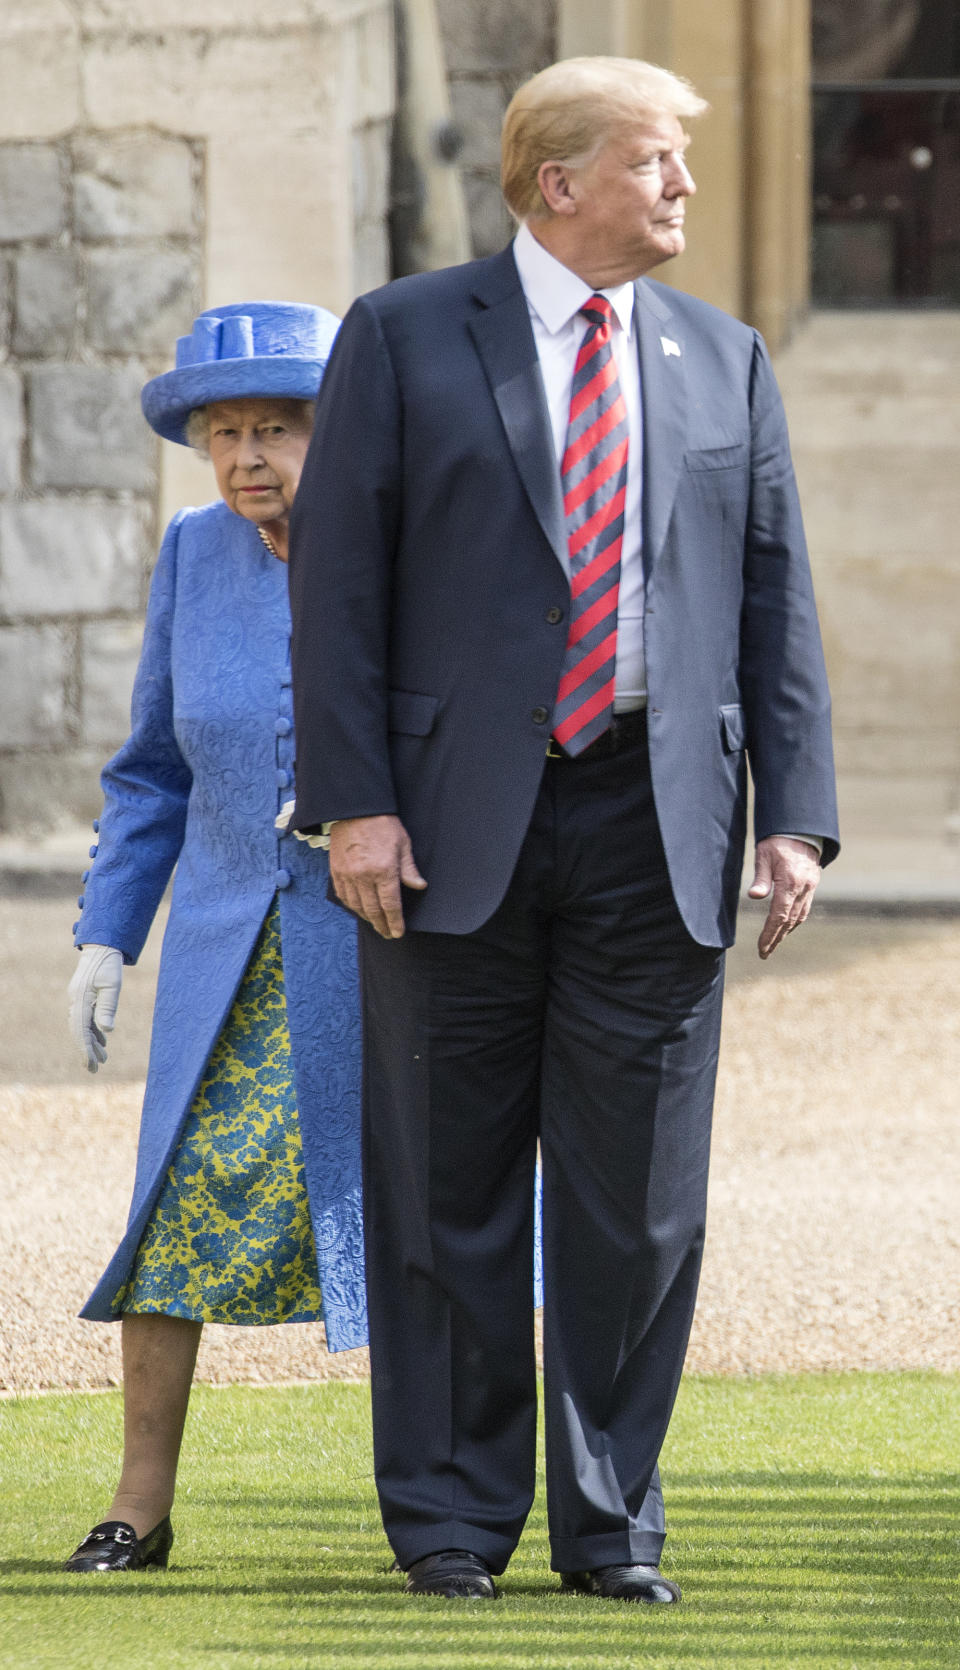 WINDSOR, ENGLAND - JULY 13:  U.S. President Donald Trump and Britain's Queen Elizabeth II inspect a Guard of Honour, formed of the Coldstream Guards at Windsor Castle on July 13, 2018 in Windsor, England.  Her Majesty welcomed the President and Mrs Trump at the dais in the Quadrangle of the Castle. A Guard of Honour, formed of the Coldstream Guards, gave a Royal Salute and the US National Anthem was played. The Queen and the President inspected the Guard of Honour before watching the military march past. The President and First Lady then joined Her Majesty for tea at the Castle.  (Photo by Richard Pohle  - WPA Pool/Getty Images)